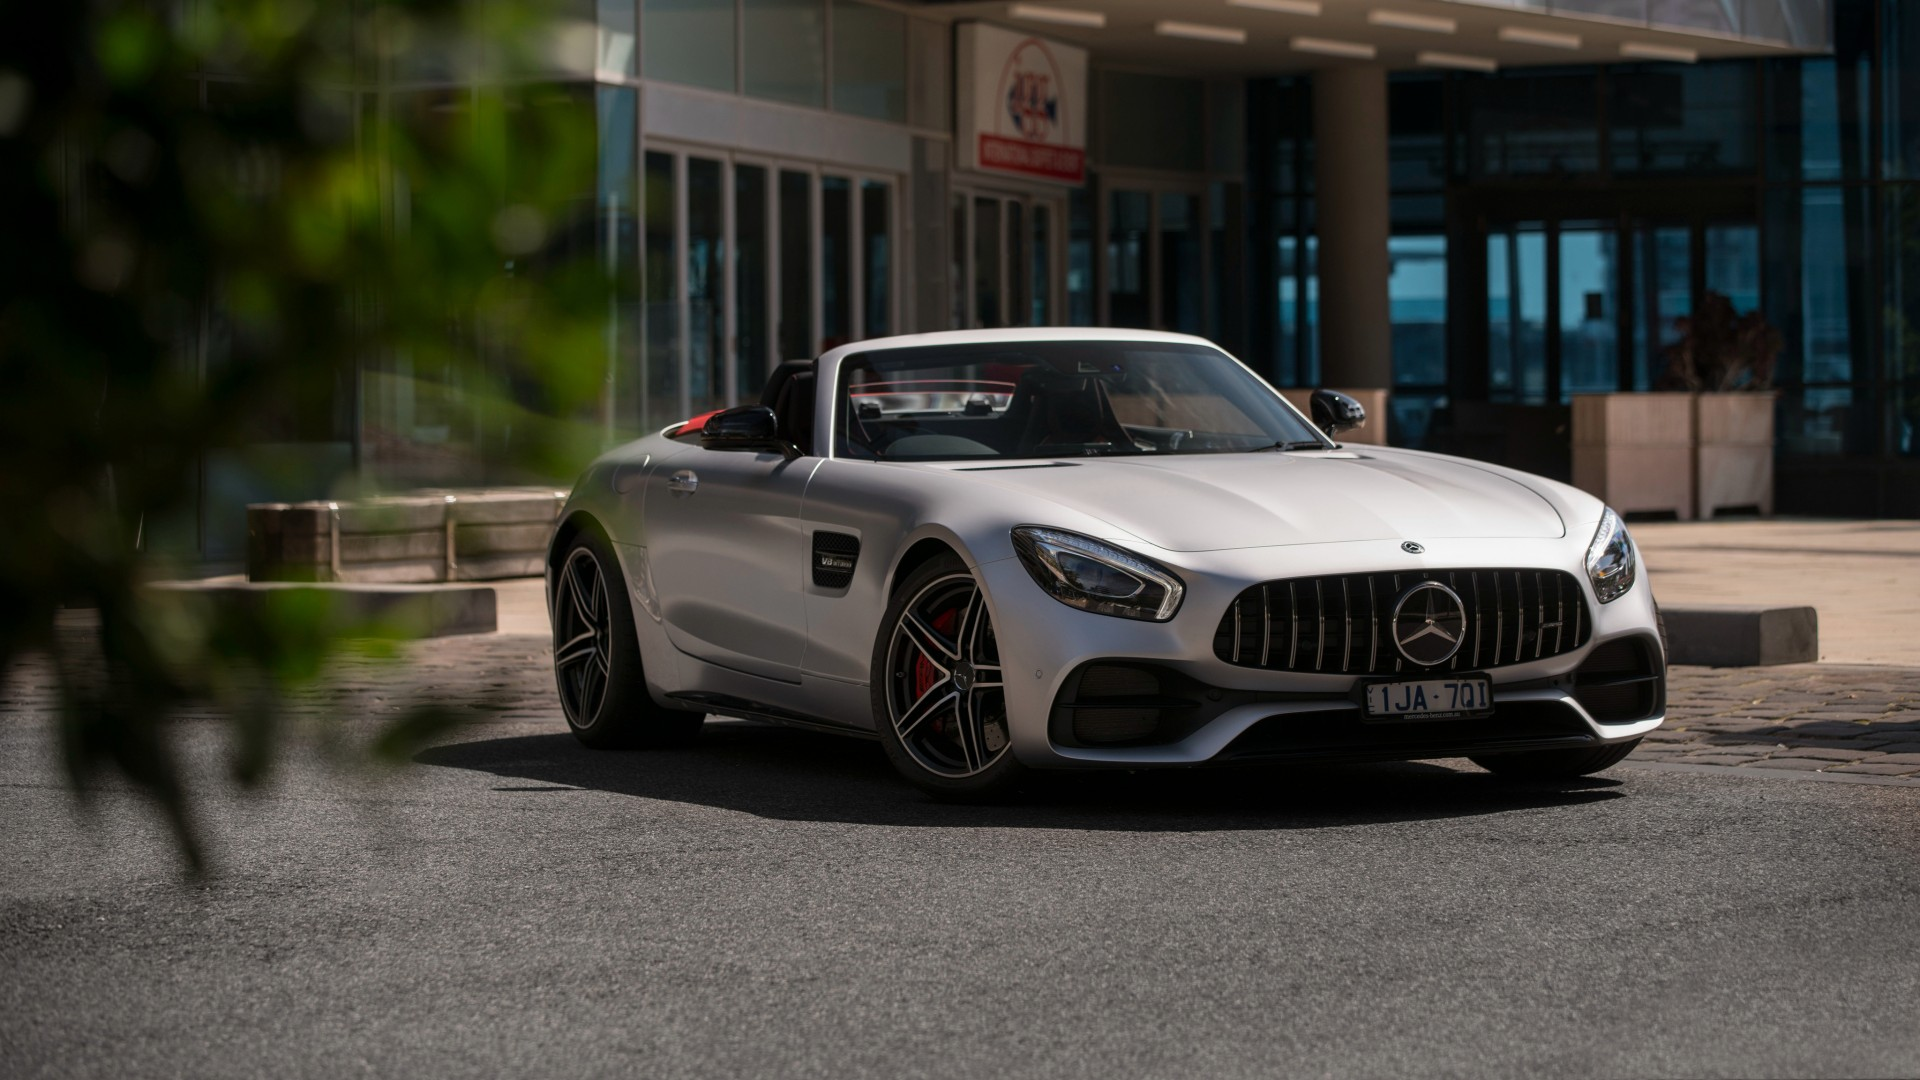 Mercedes AMG GT C Roadster 2018 4K 5 Wallpaper HD Car